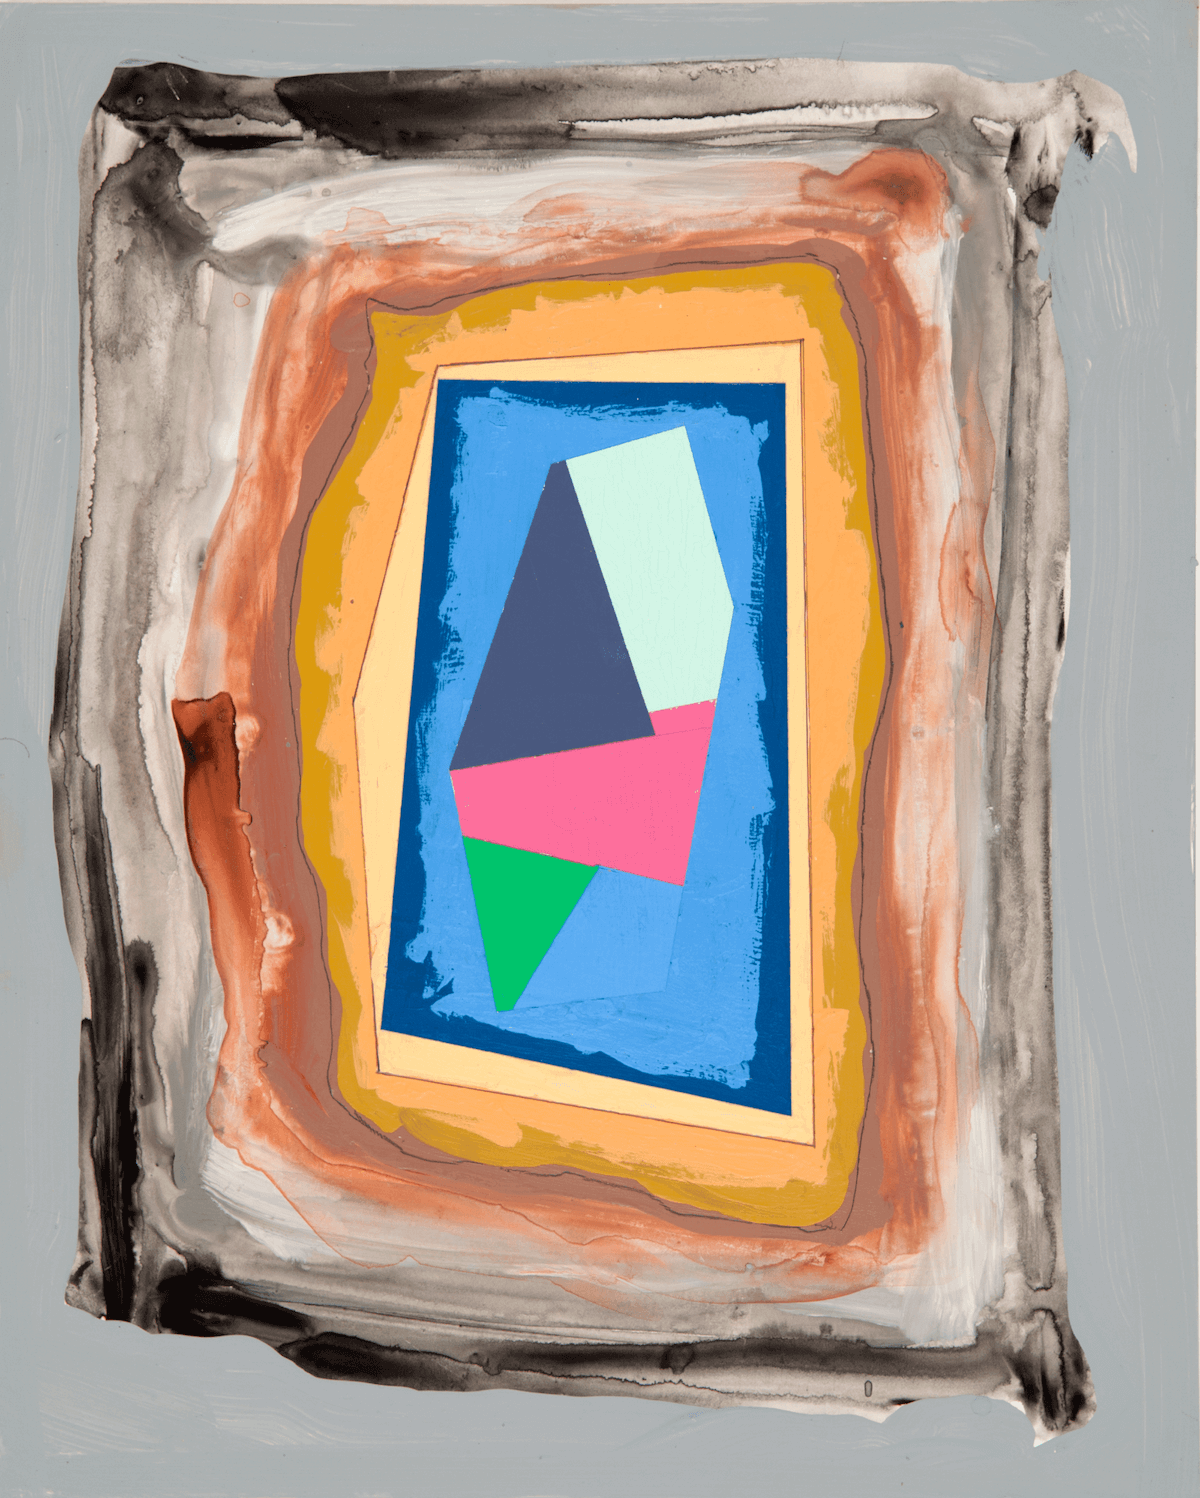 Peter Plagens, Study 7, 2013, acrylic on panel, 10 x 8 inches (courtesy of the artist and Nancy Hoffman Gallery)